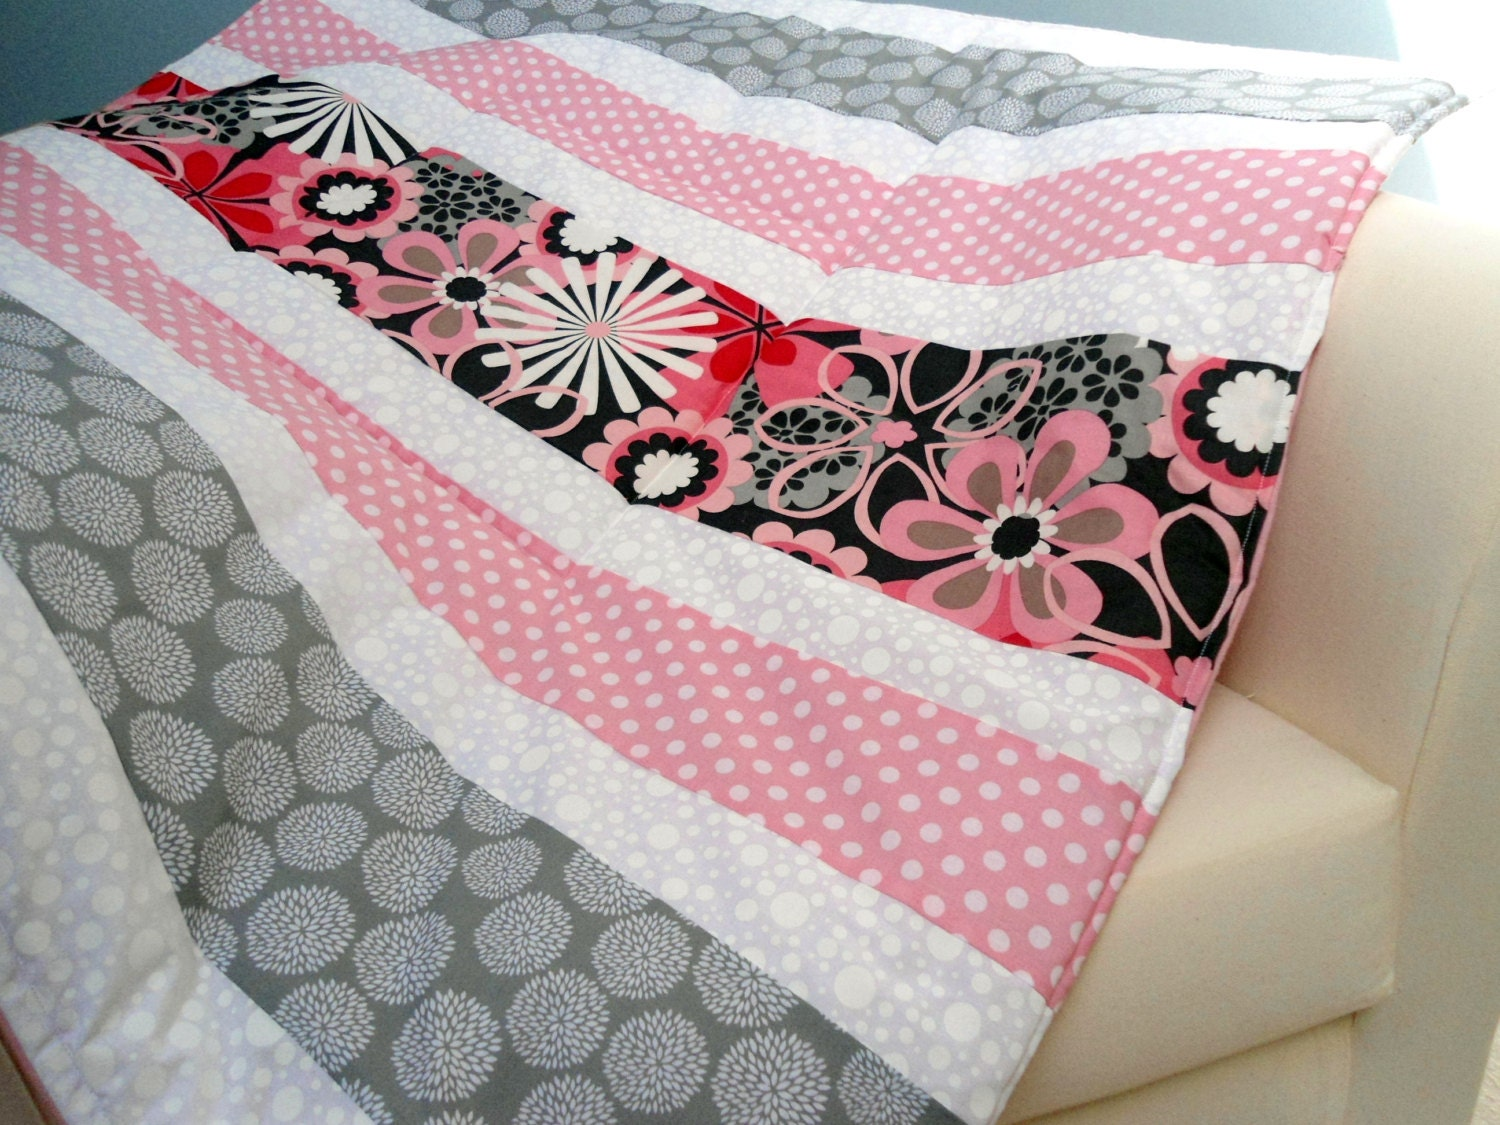 Baby Playmat Padded Floor Blanket Personalize Pink Flowers